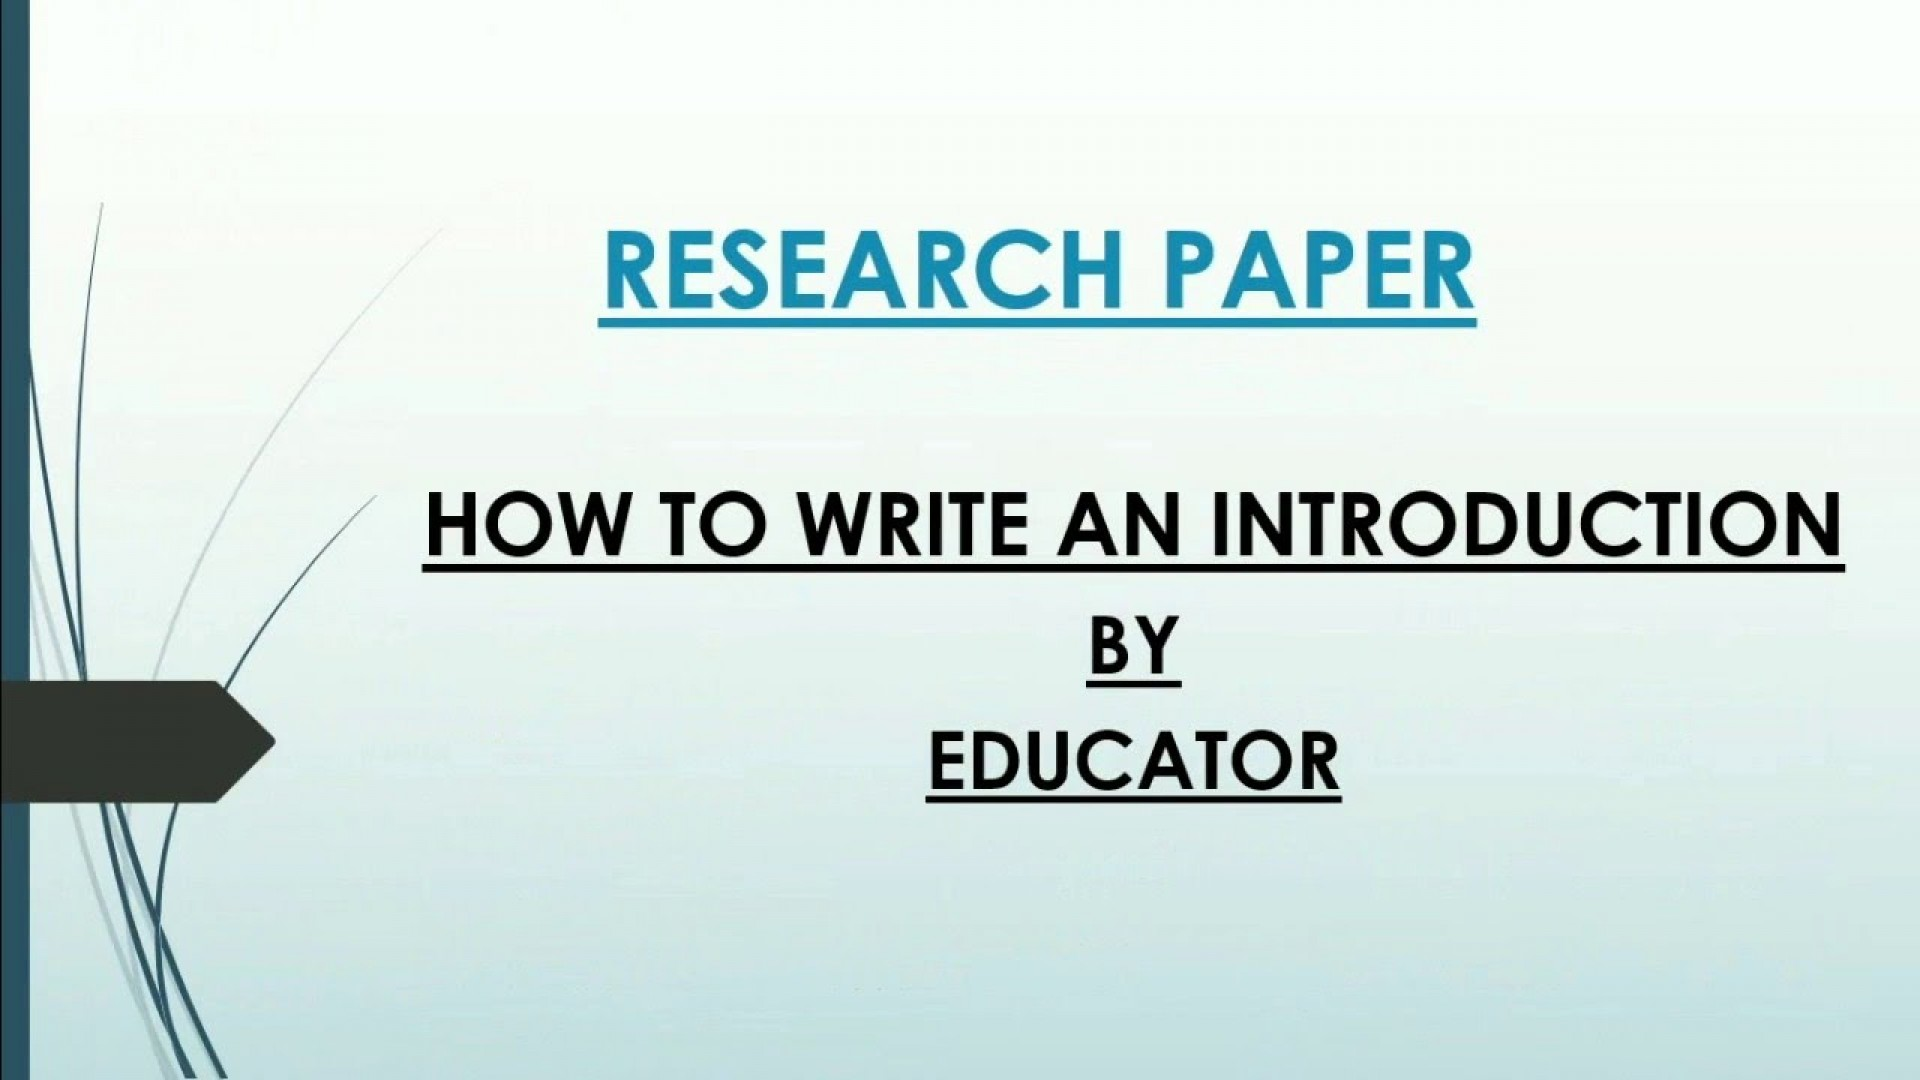 004 How Do You Write Good Introduction For Research Paper Amazing A Paragraph 1920